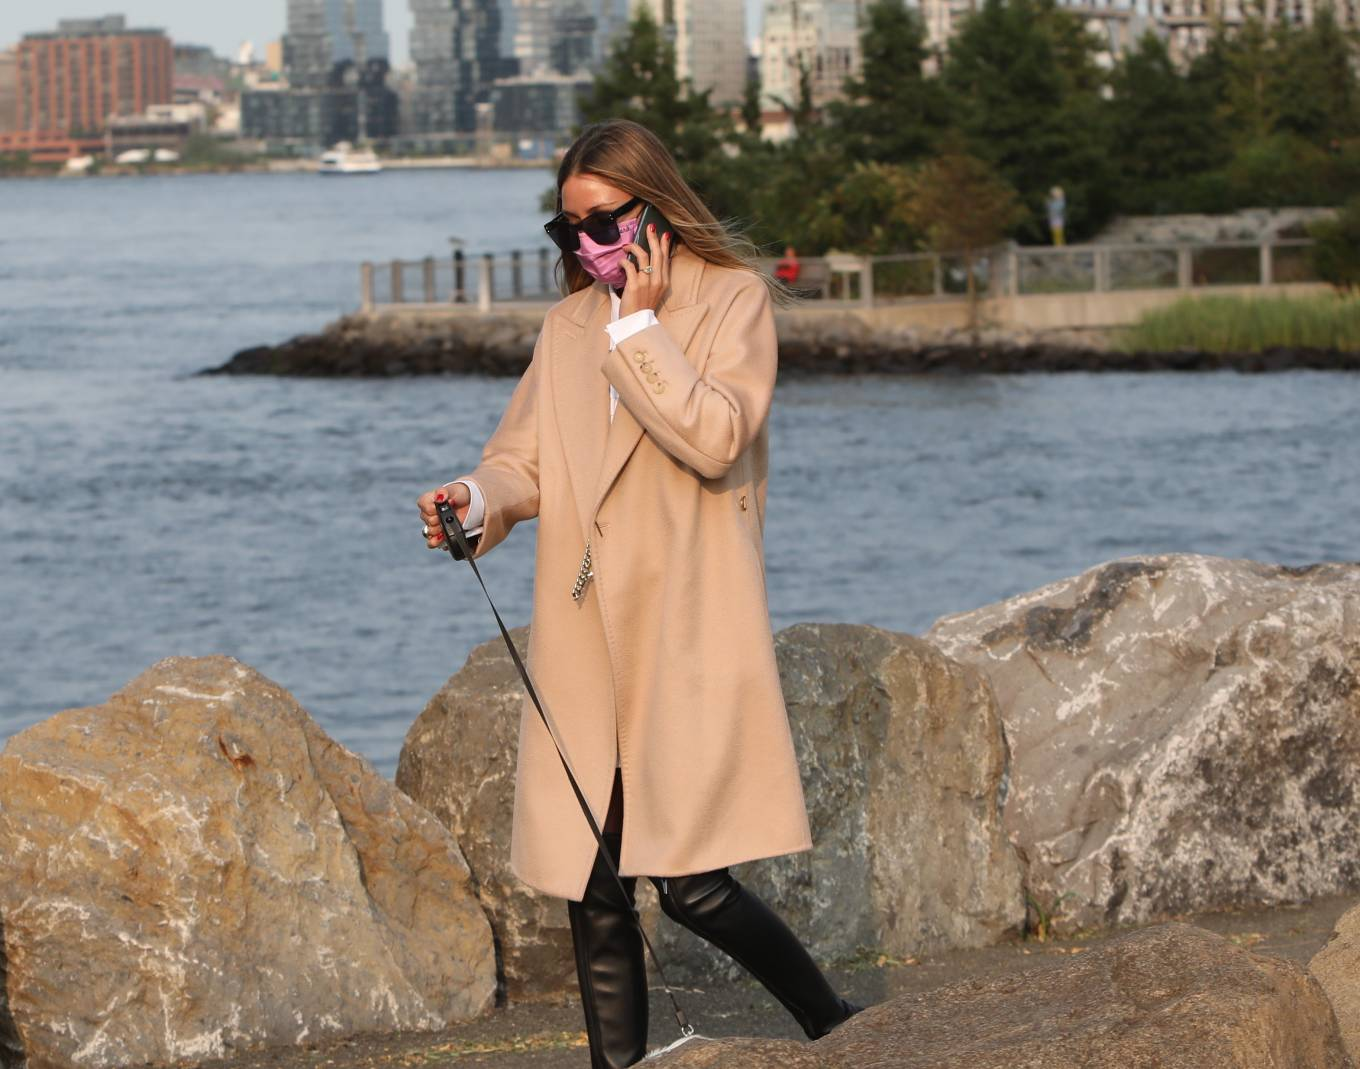 Olivia Palermo 2020 : Olivia Palermo – Wearing a white short dress under a coat while out for a walk in Manhattan-19